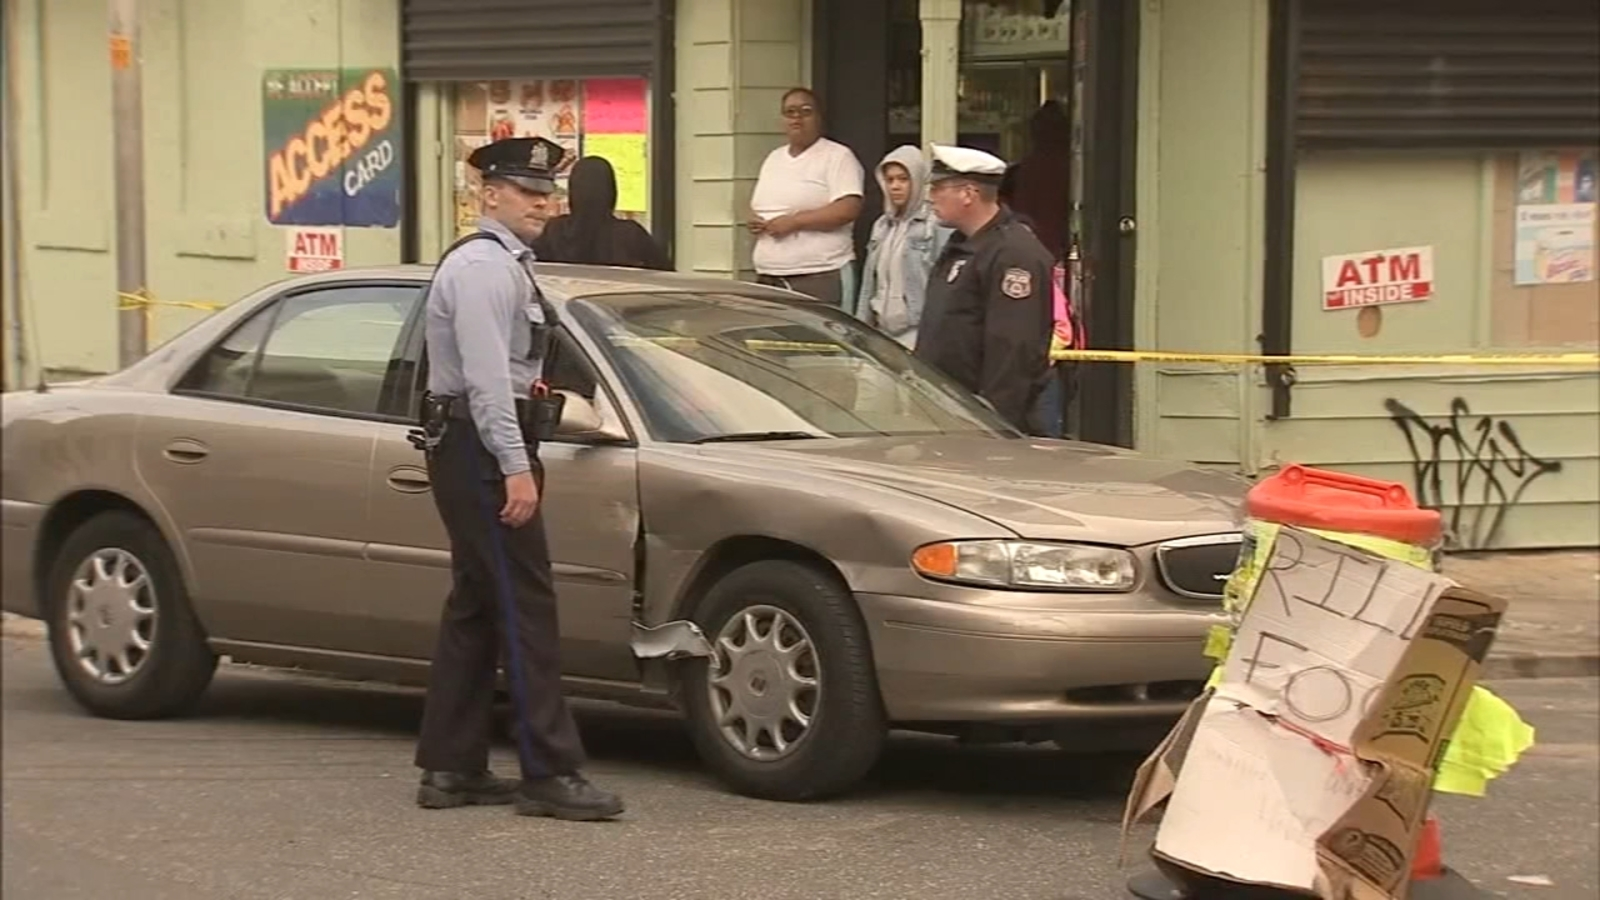 Police: 6 victims hit by car in North Philadelphia, and car's driver, under investigation